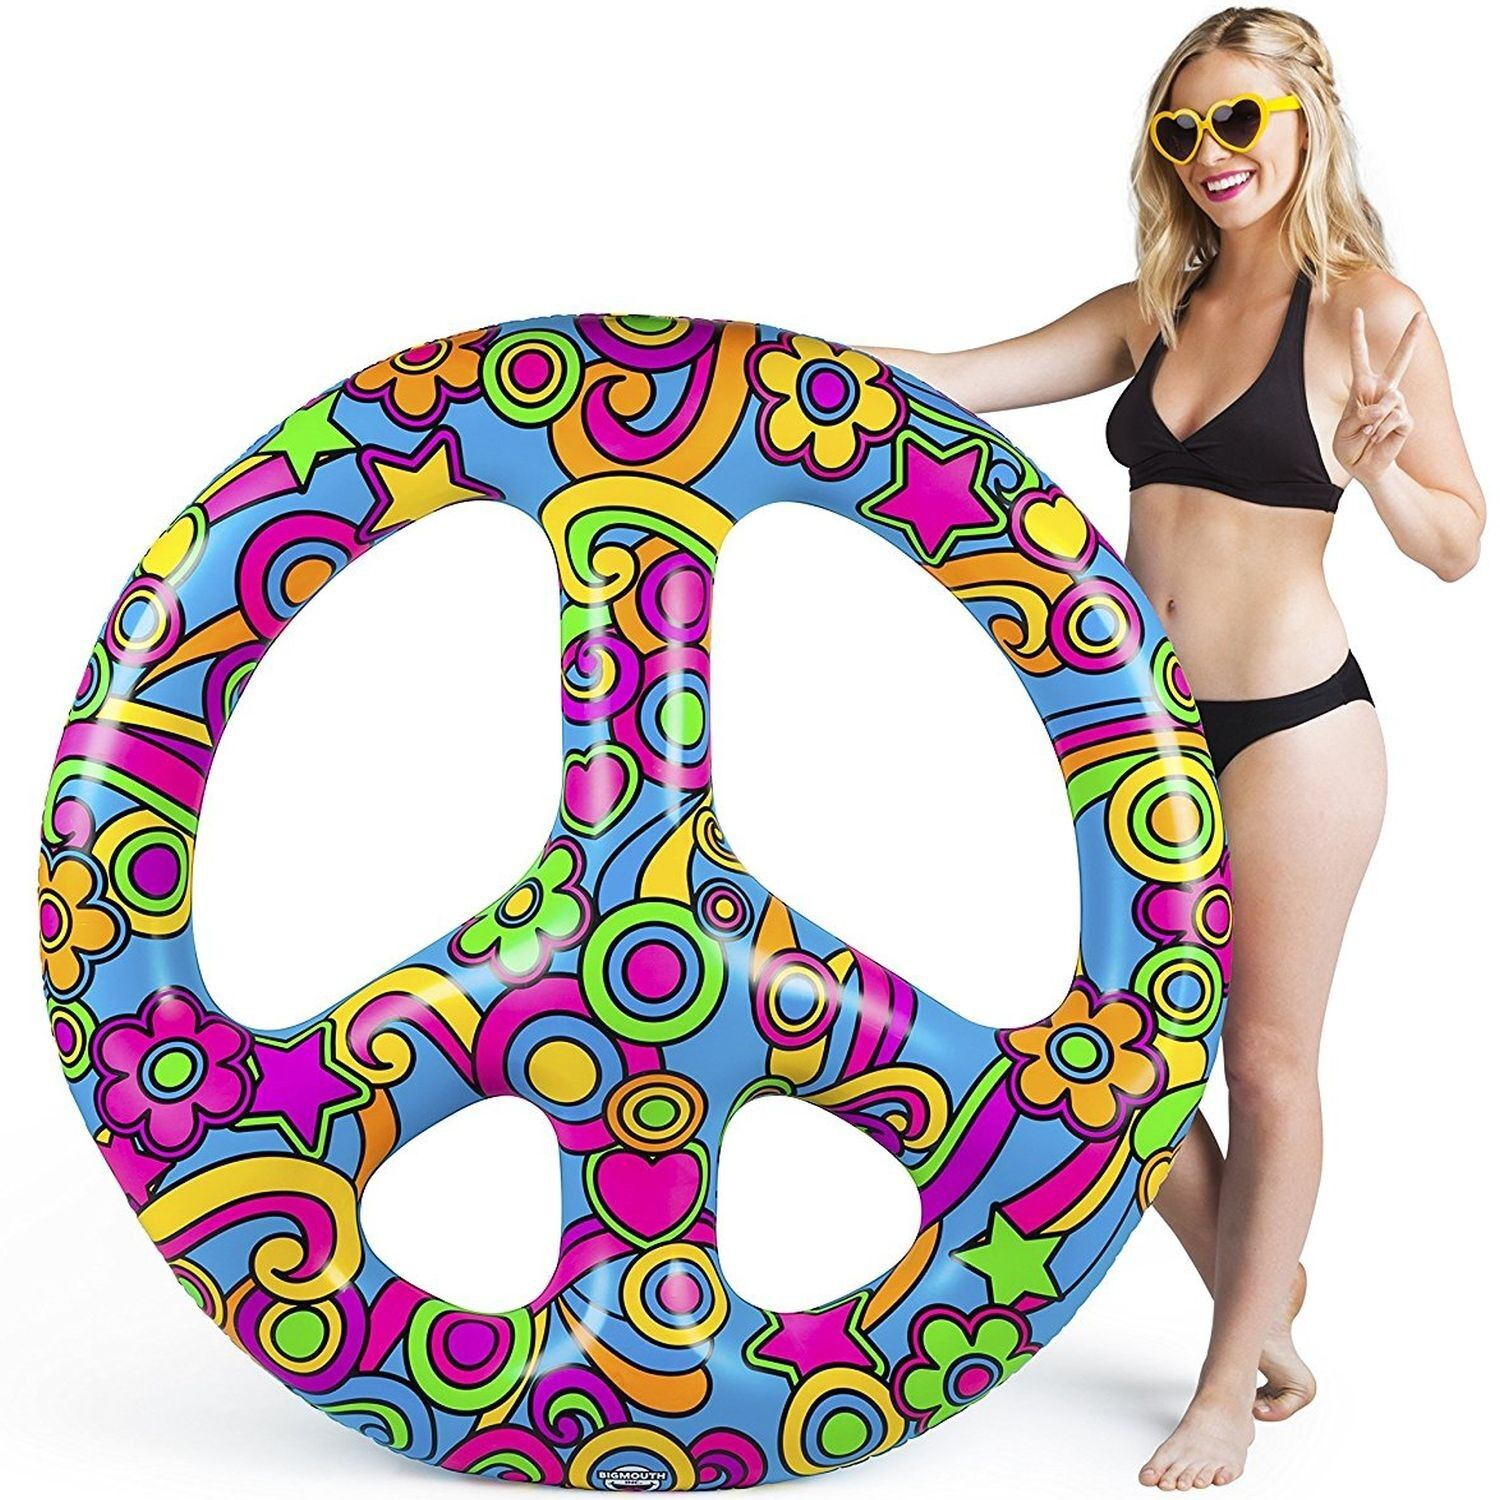 Big Mouth Inc Giant Peace Sign Pool Float - 4 foot